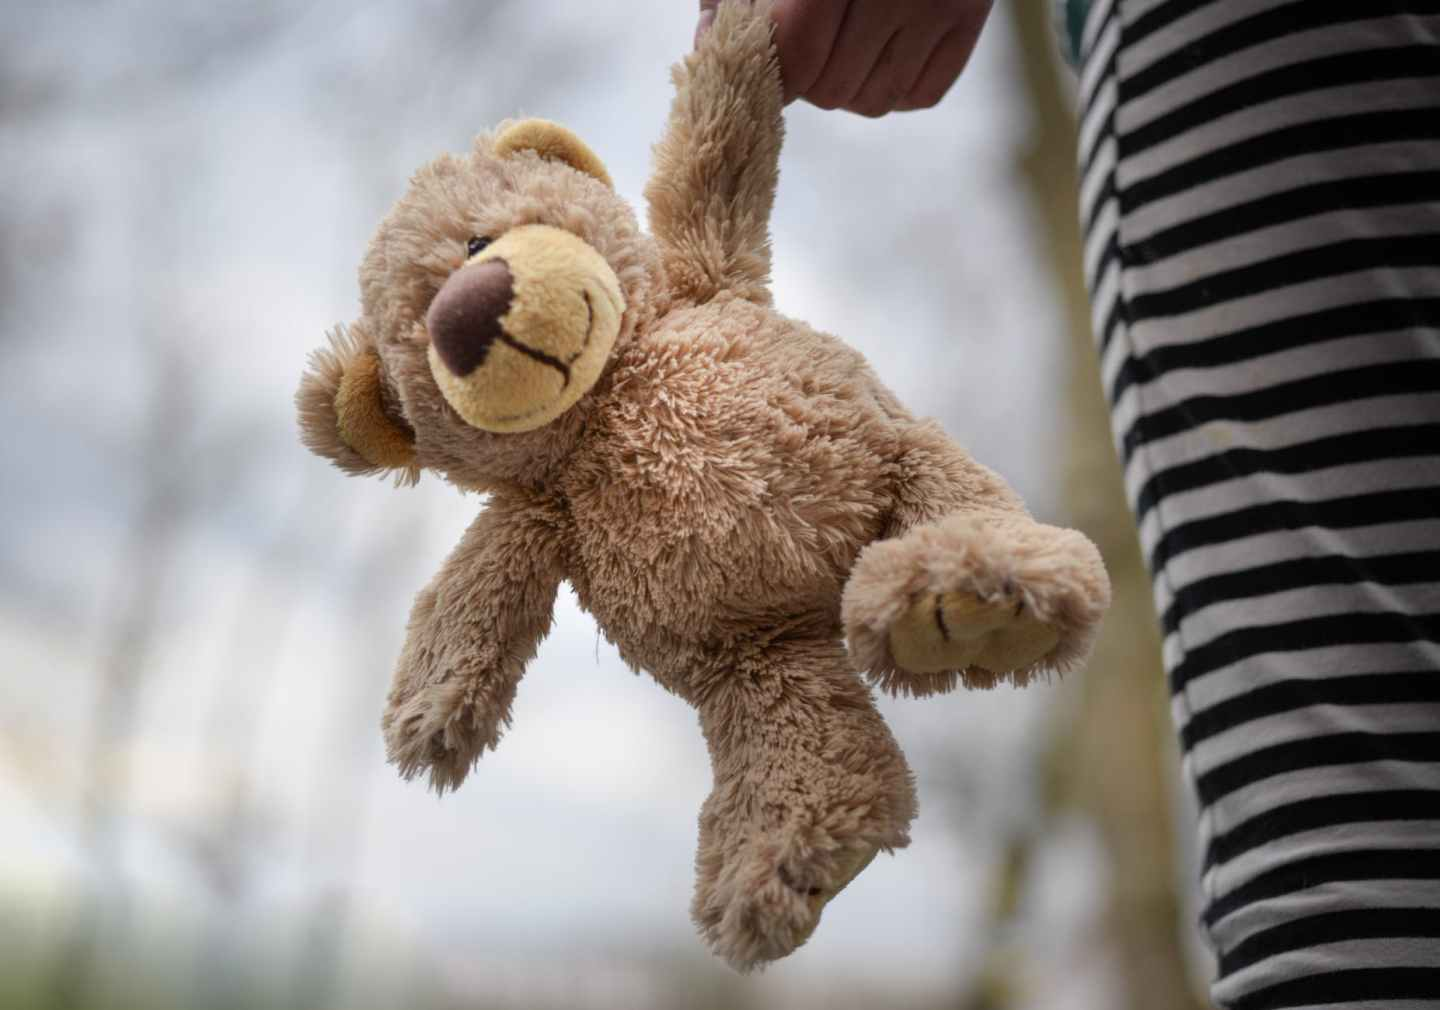 closeup photography of brown teddy bear